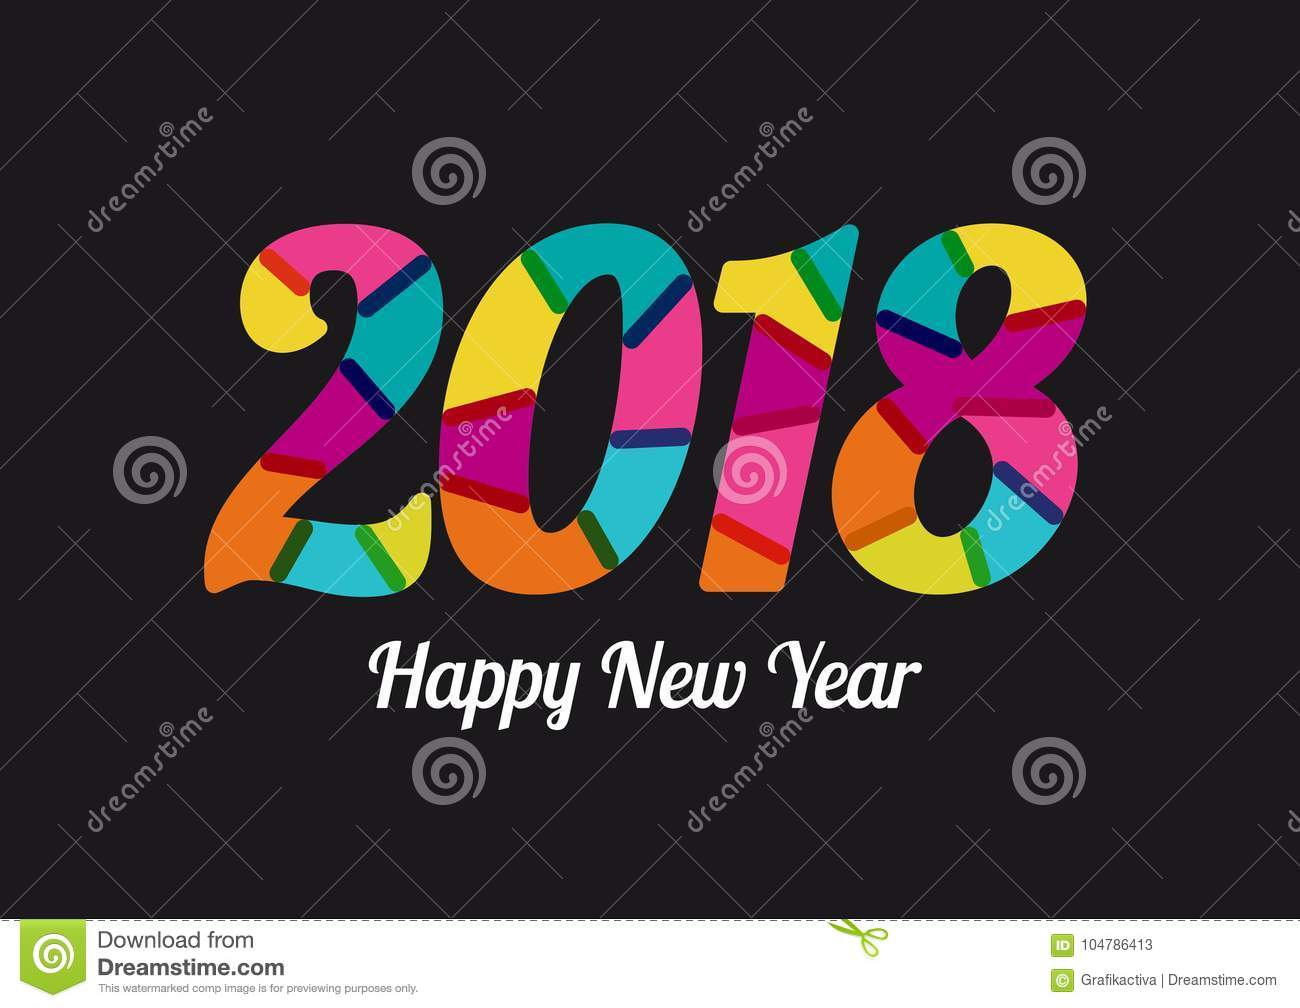 2018 new year with cheerful colors mixed flat colors